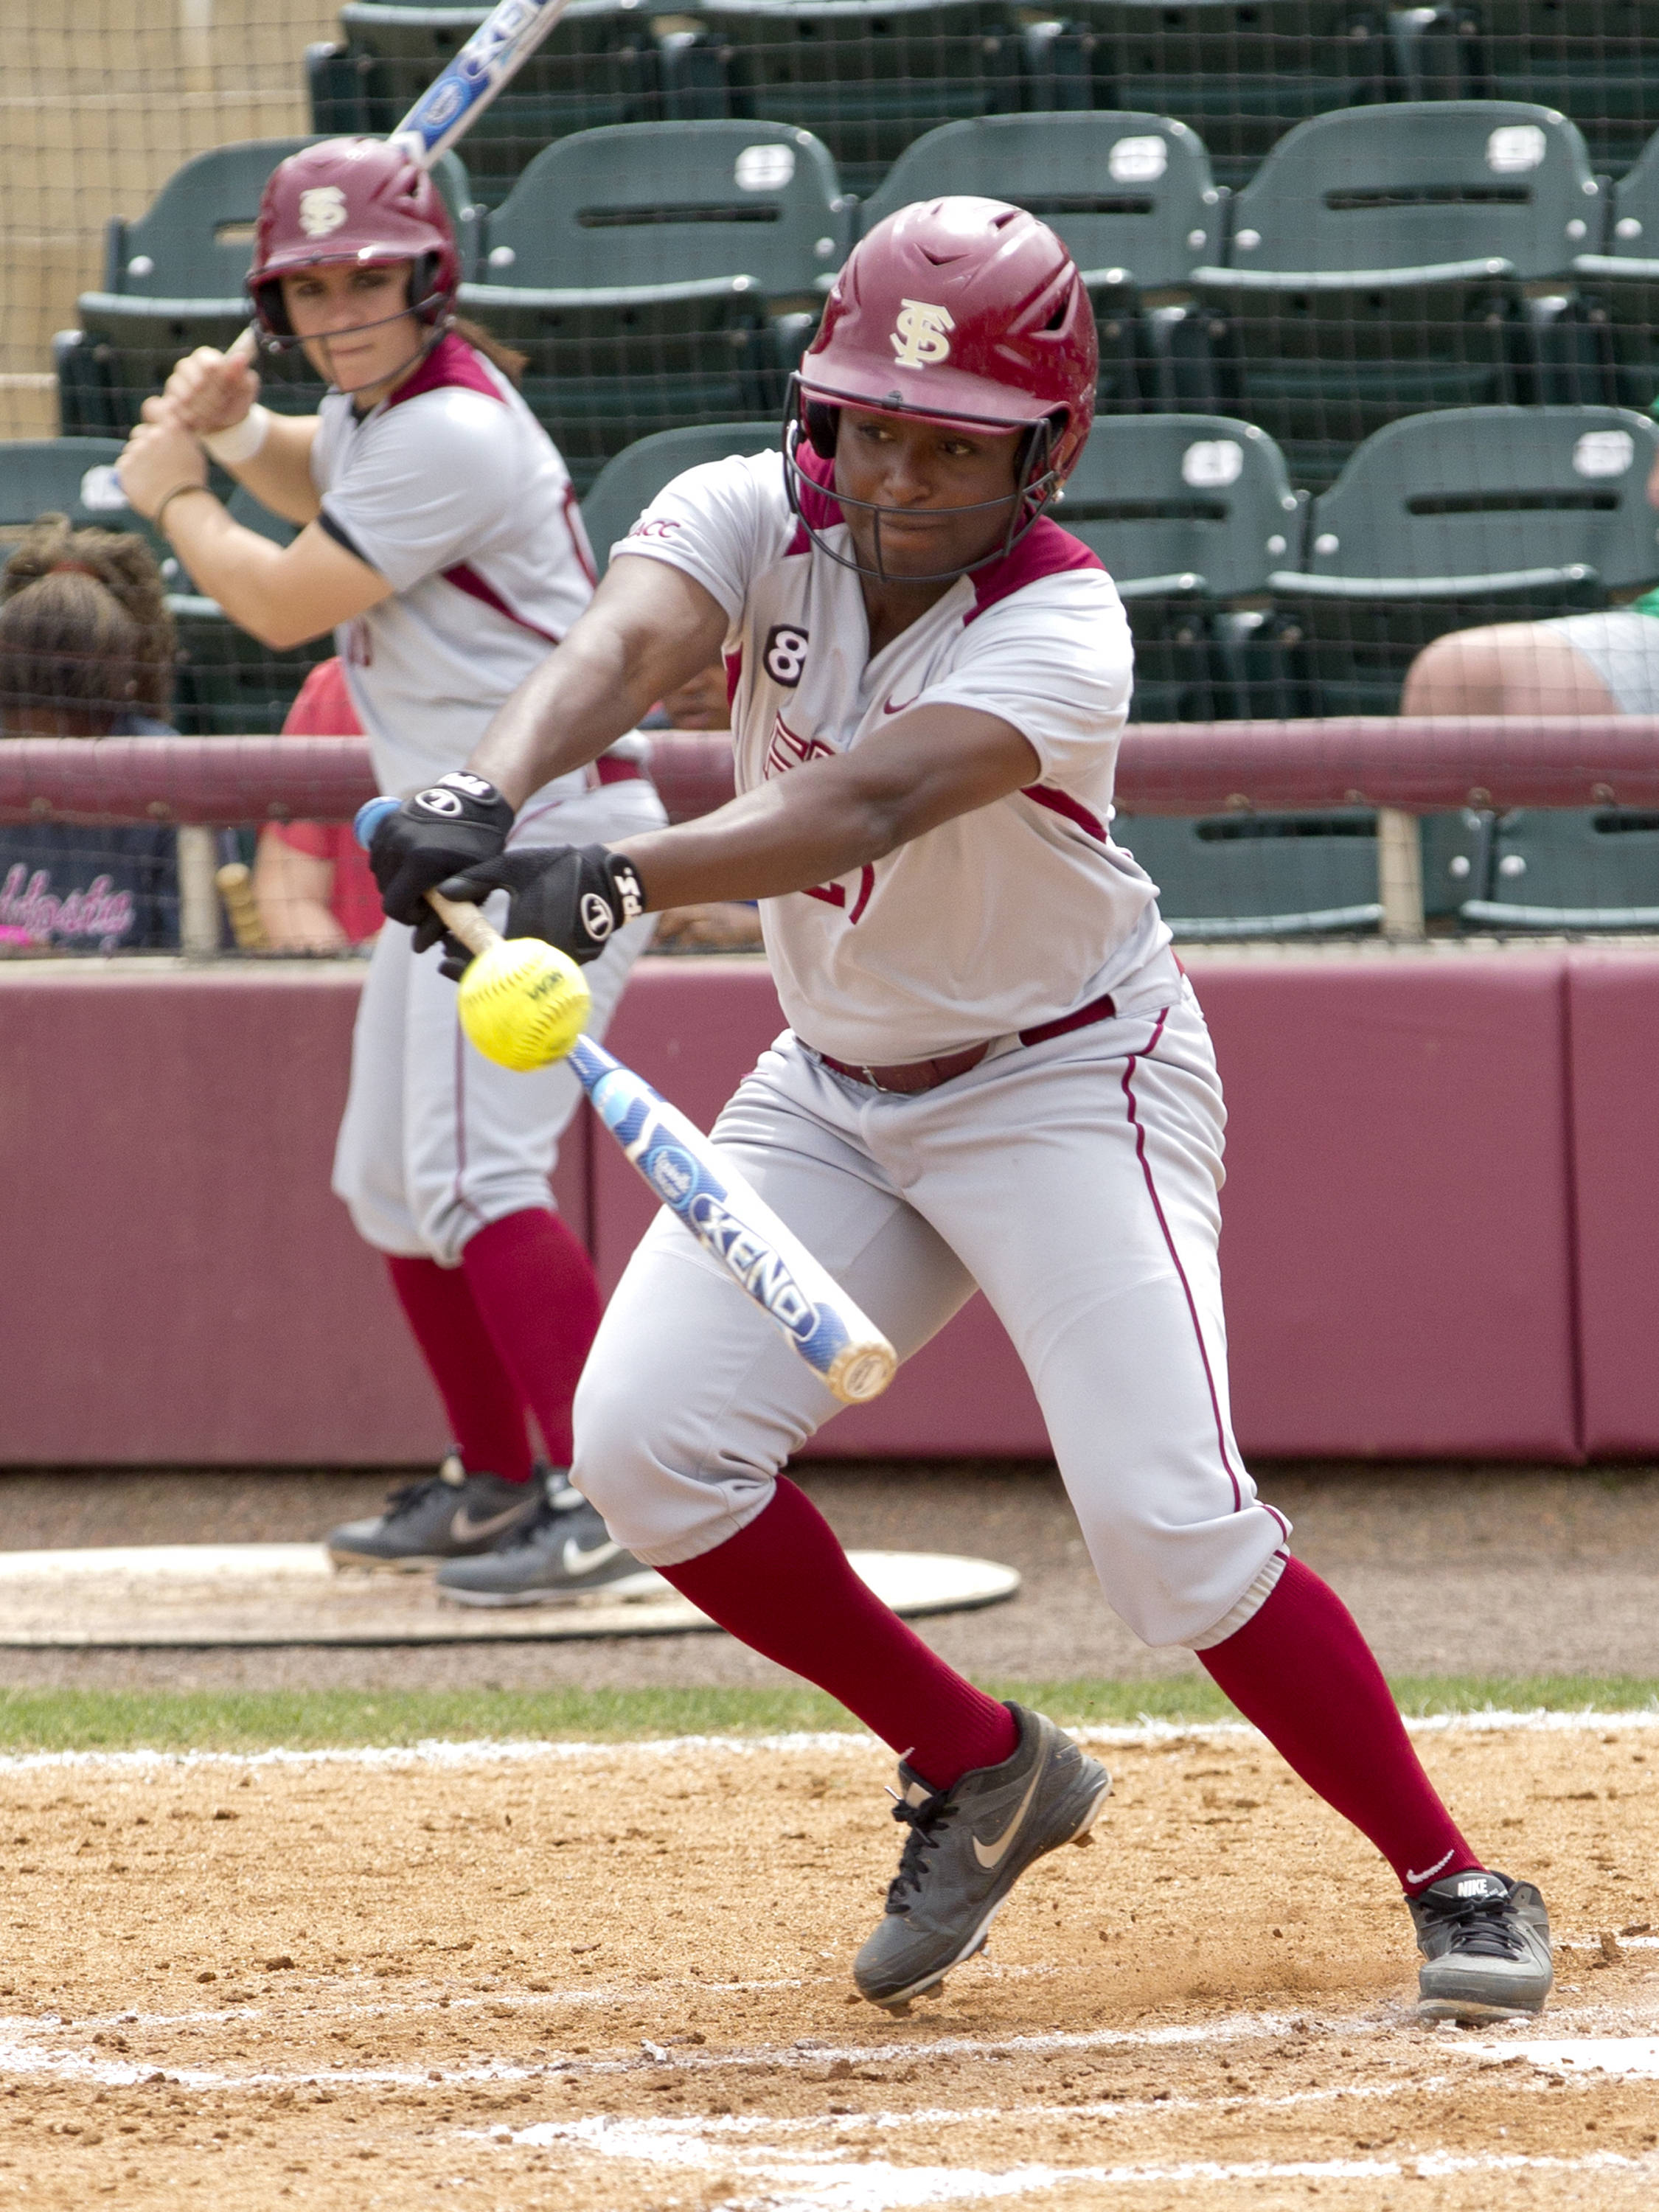 Morgan Bullock (21), FSU vs Minnesota, 03/17/13. (Photo by Steve Musco)